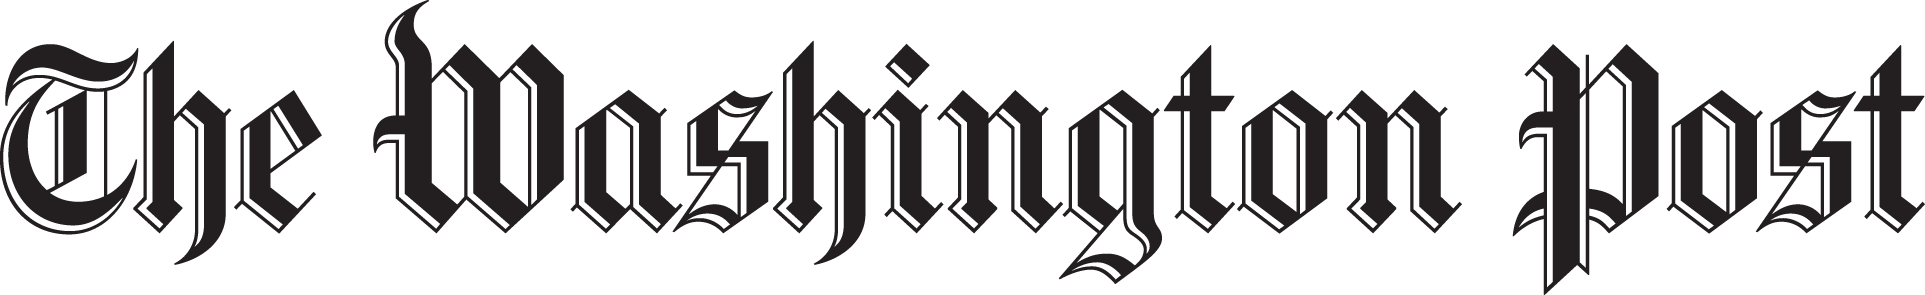 the washington post logo.png